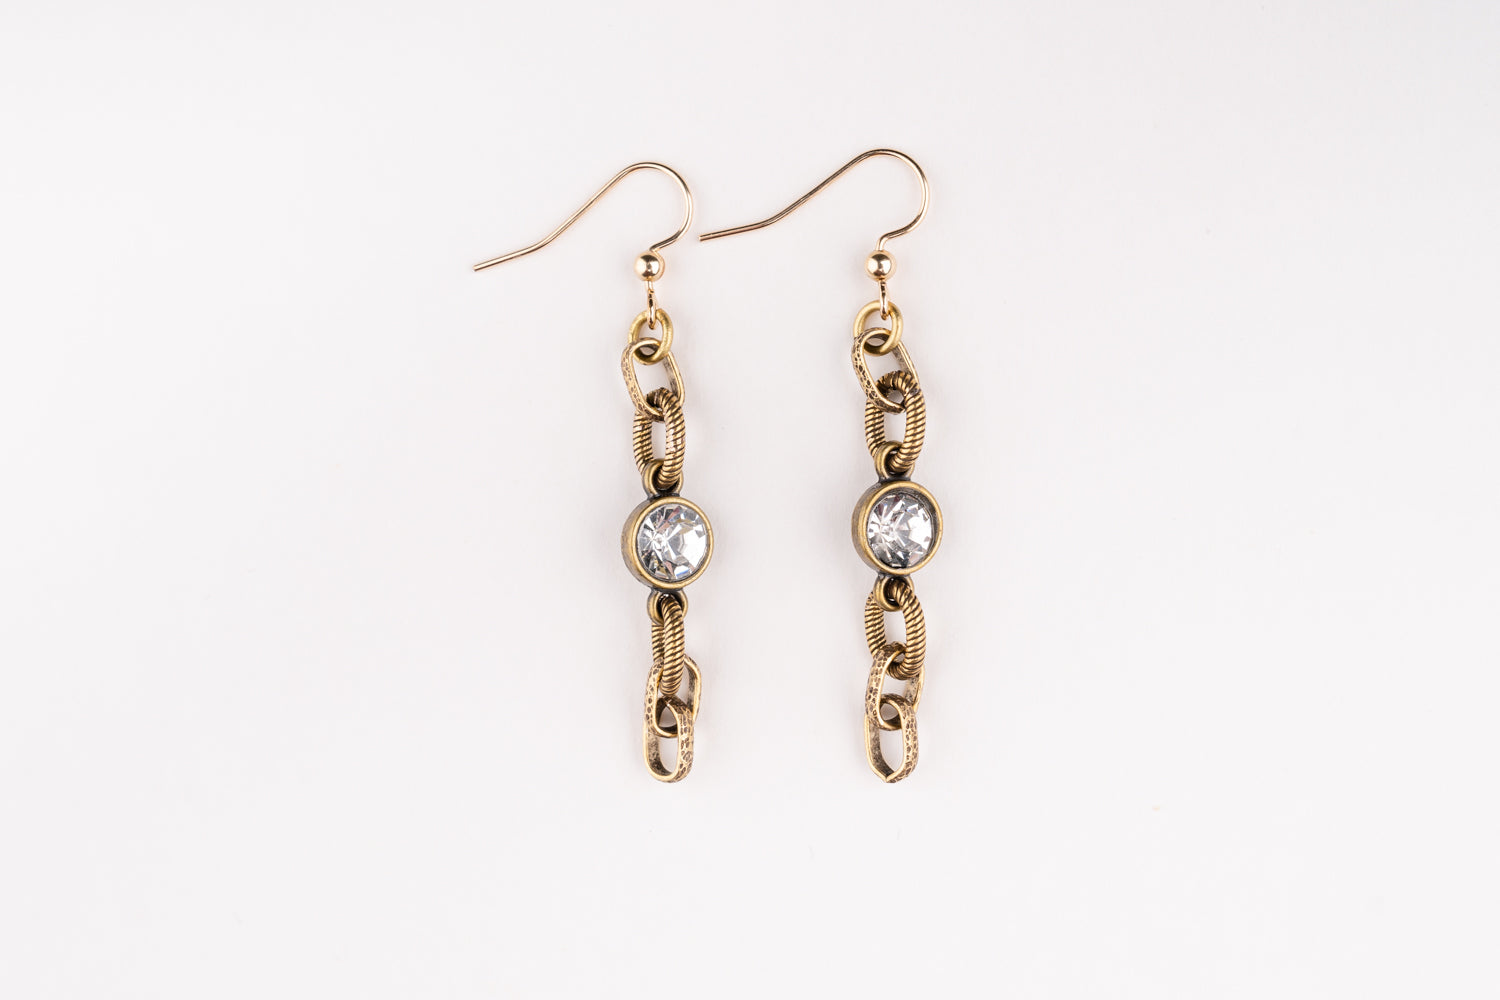 Carolily Finery earrings made from vintage inspired antique gold chain and a crystal connector